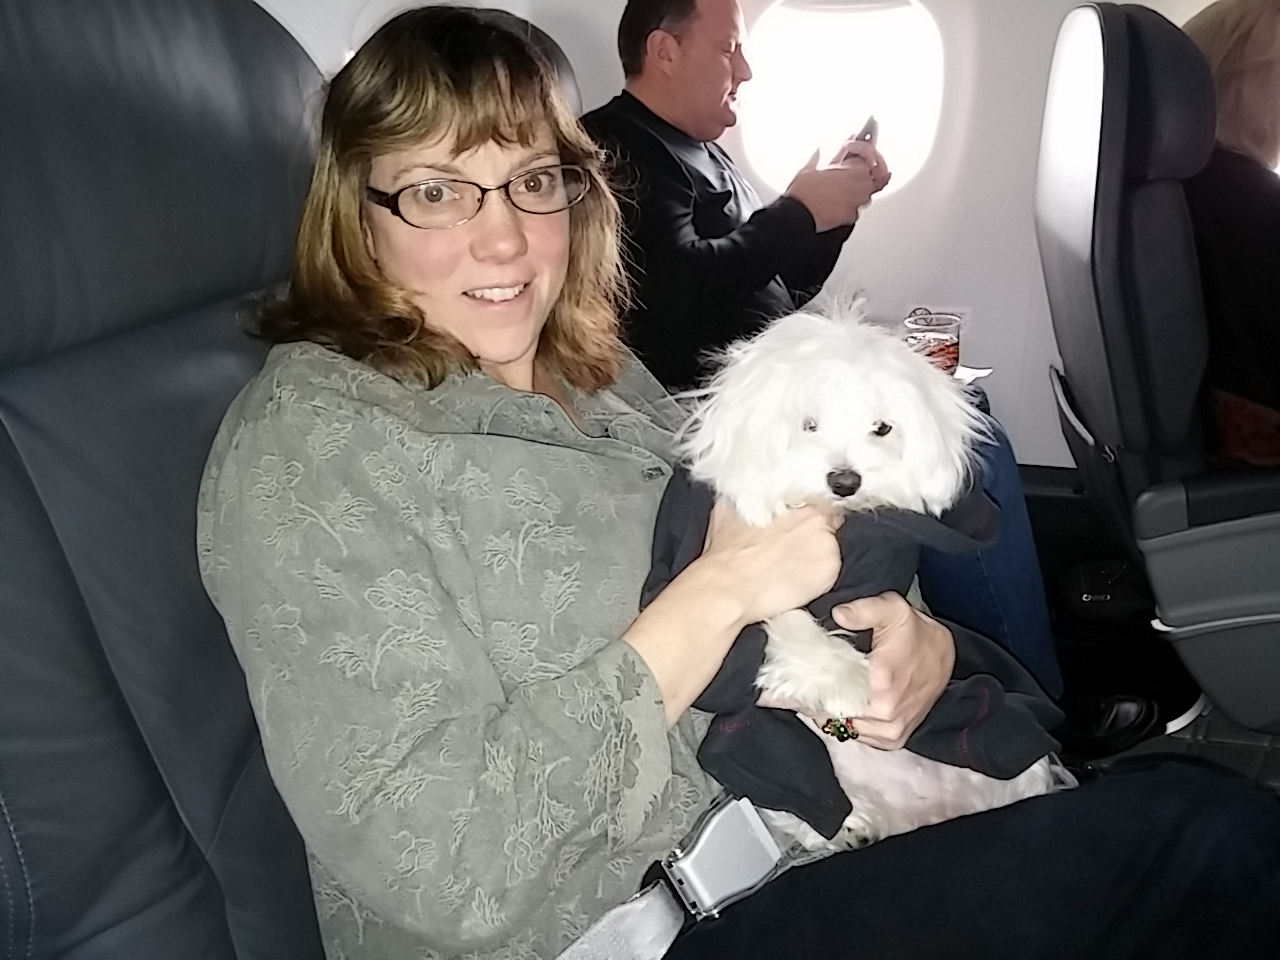 Carol and Pula in Airplane